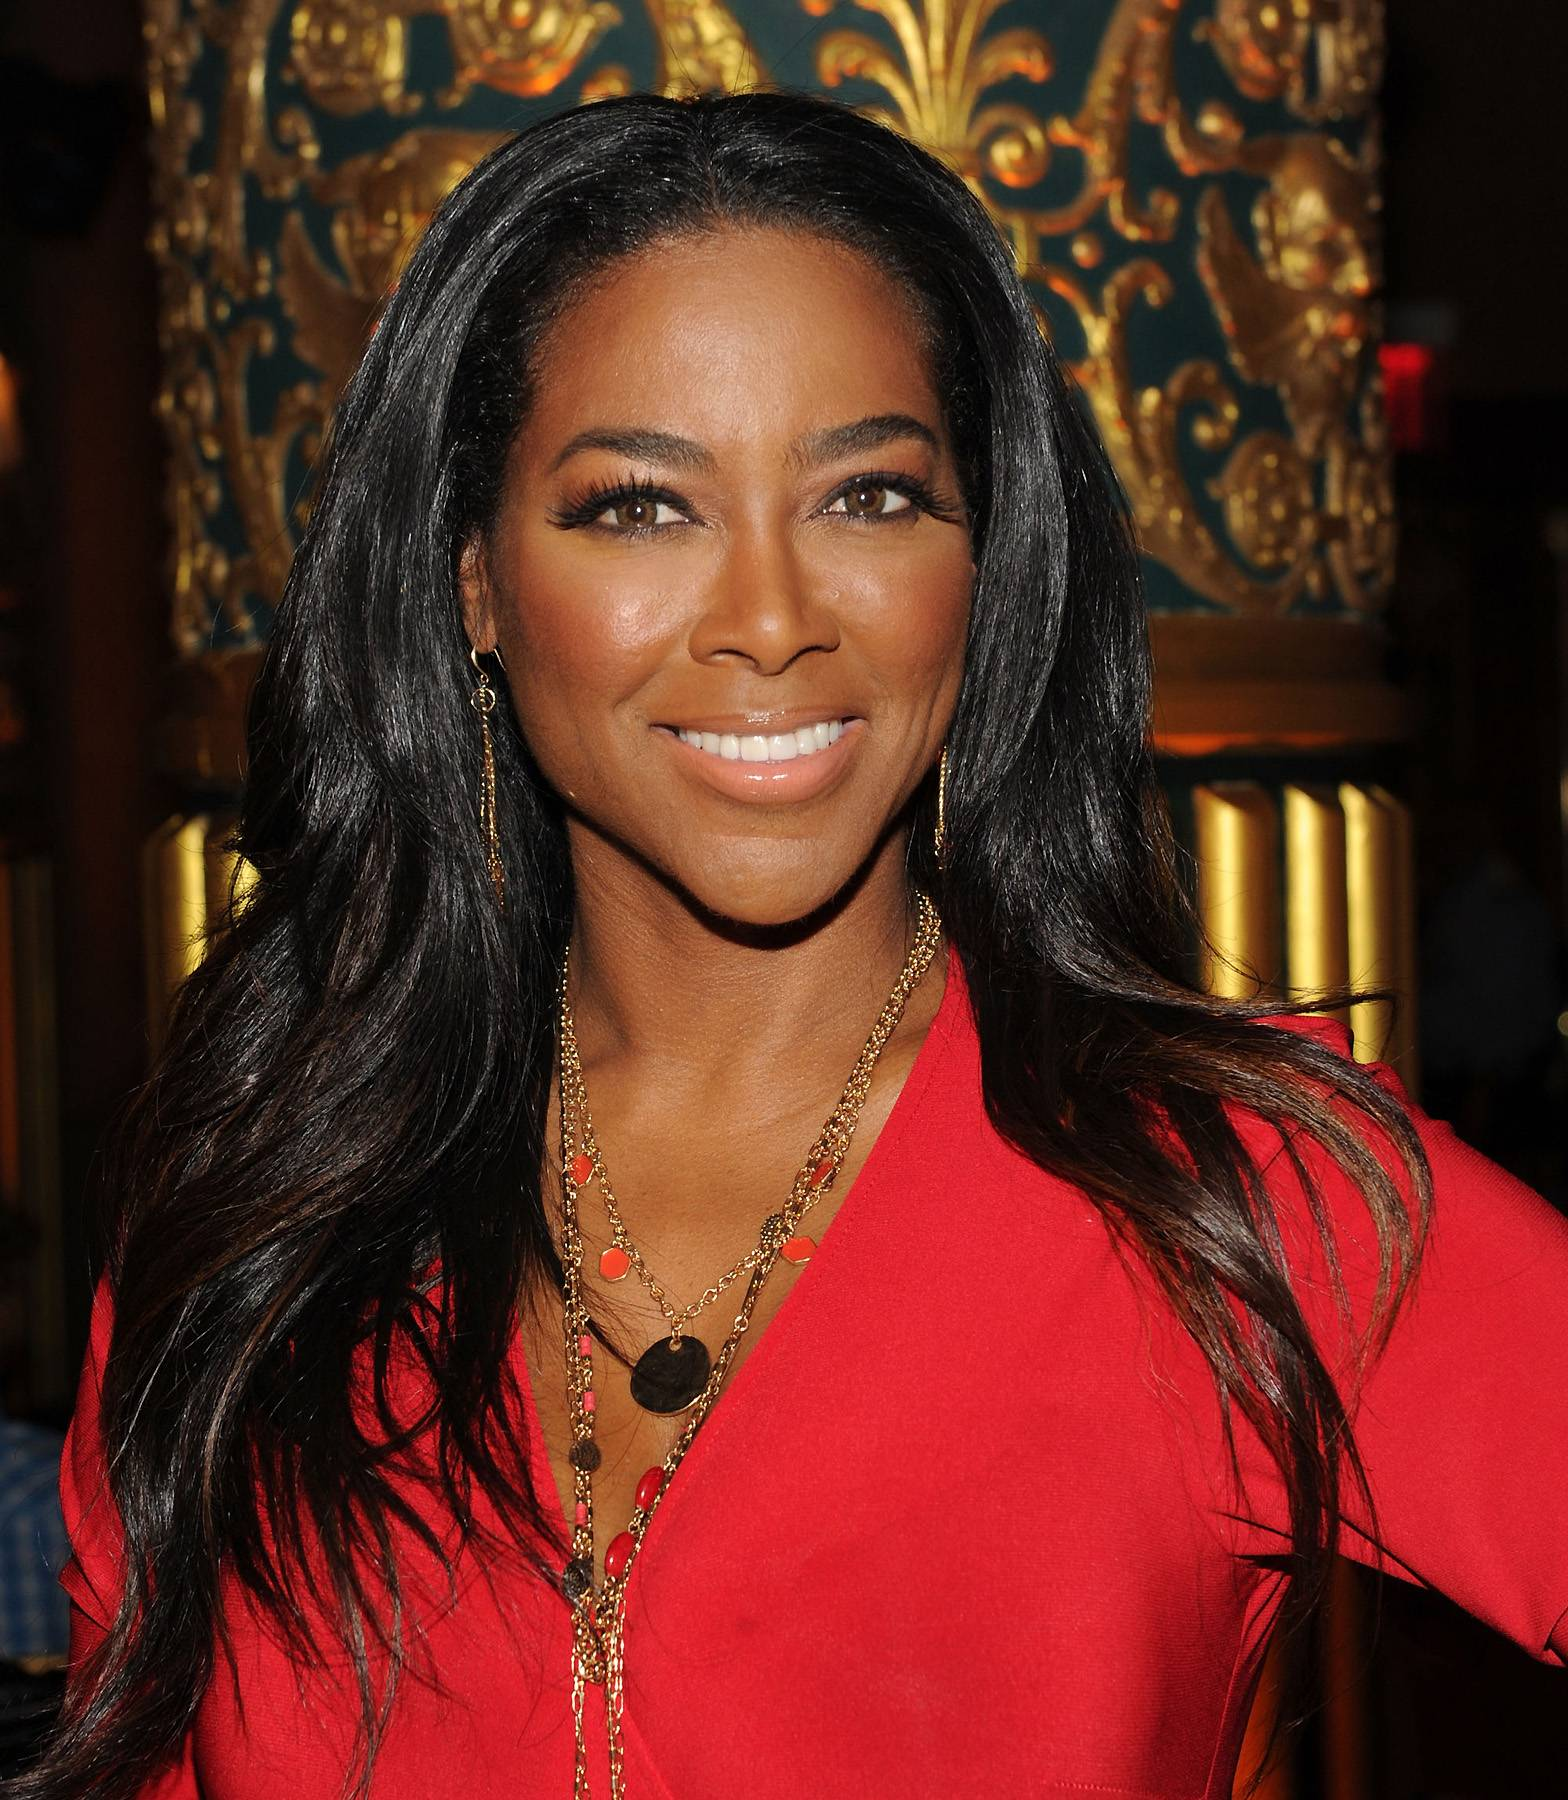 Kenya Moore Attempts to Make Amends - Kenya Moore felt so guilty for canceling an appearance at a Detroit high school twice, that she wrote them a check for $20,000. She made a show of it by posting the photo of herself holding the check on Instagram.  (Photo: Craig Barritt/Getty Images)